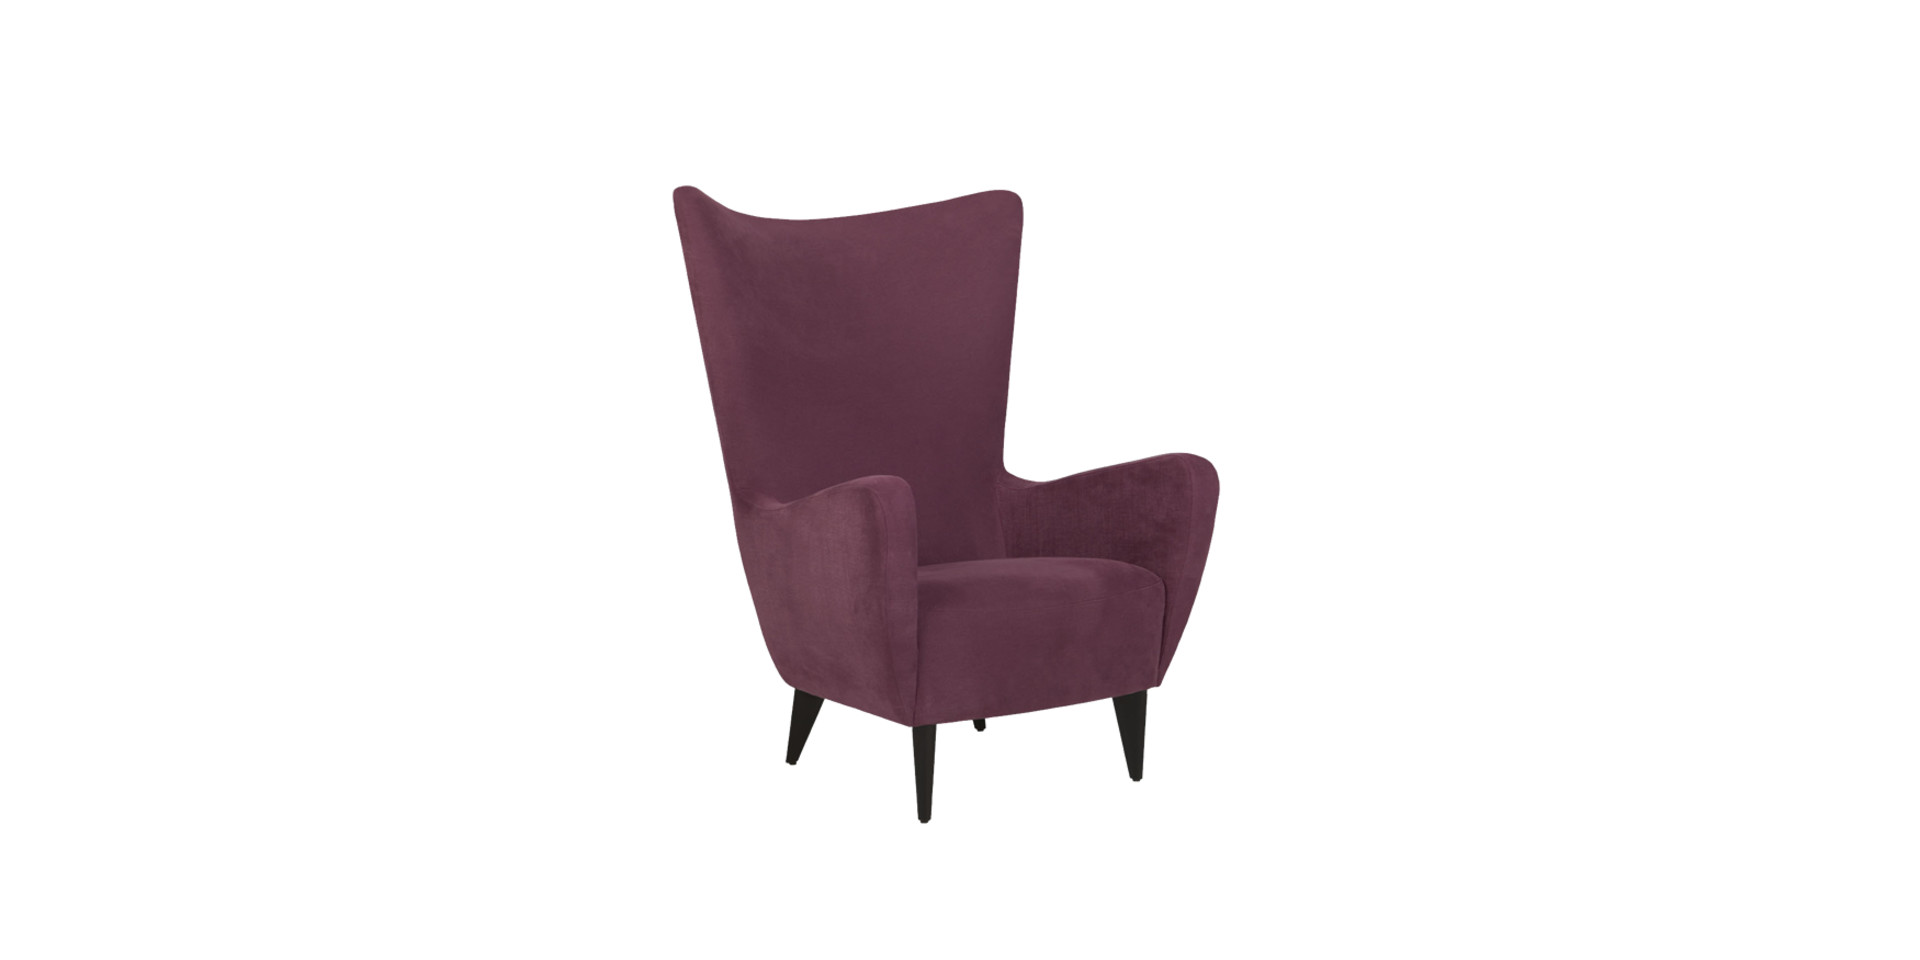 sits-kato-fauteuil-armchair_caleido1524_aubergine_2